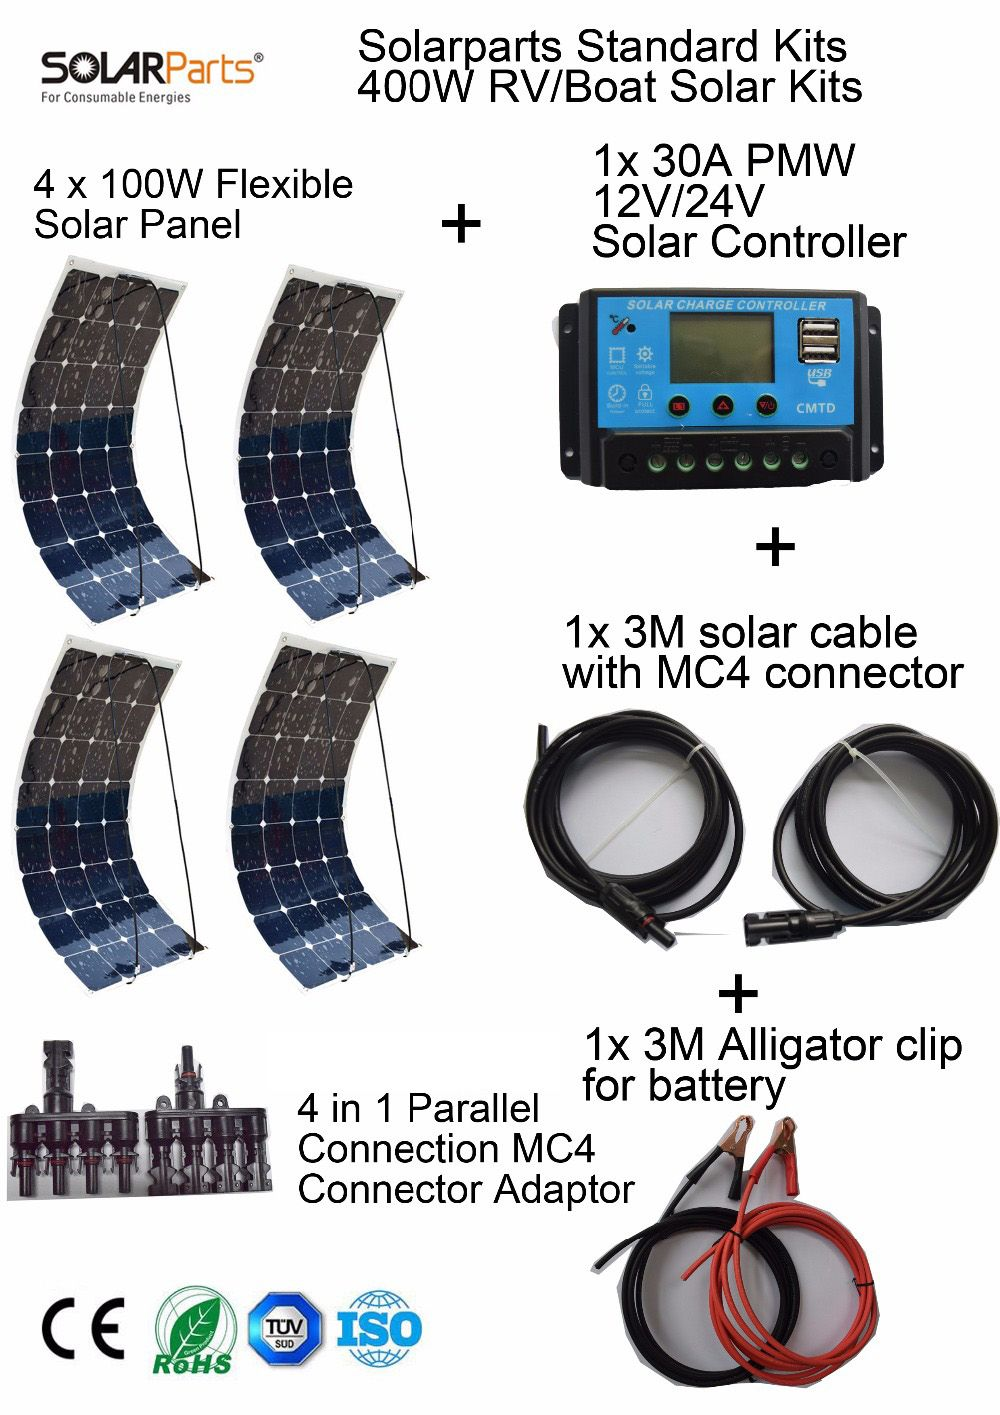 Solarparts Standard Kits 400W DIY RV/Boat Kits Solar System 100W flexible solar panel+controller+cable outdoor light led module.